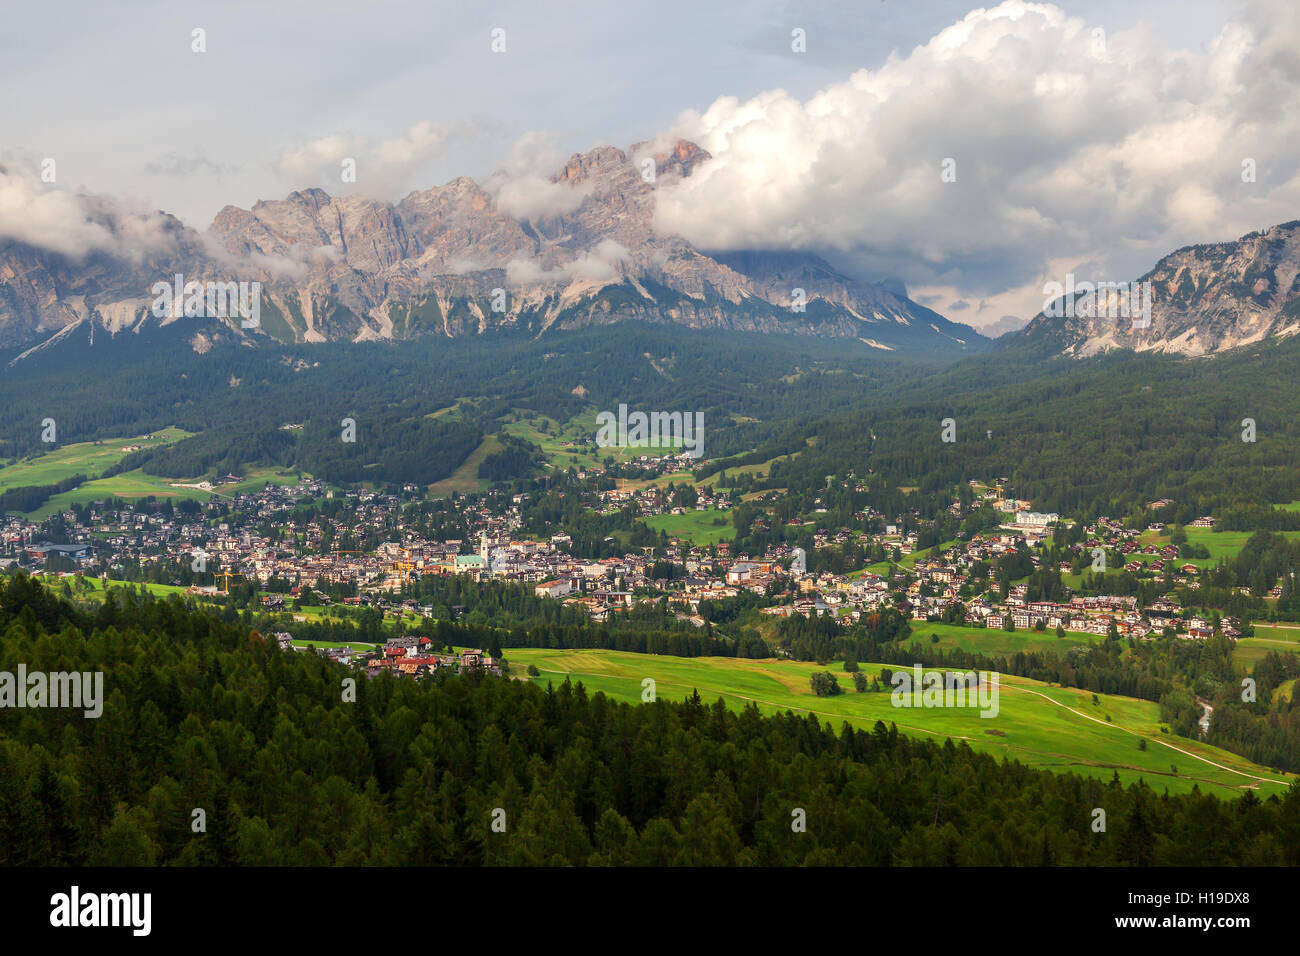 Dolomites Mountains. - Stock Image